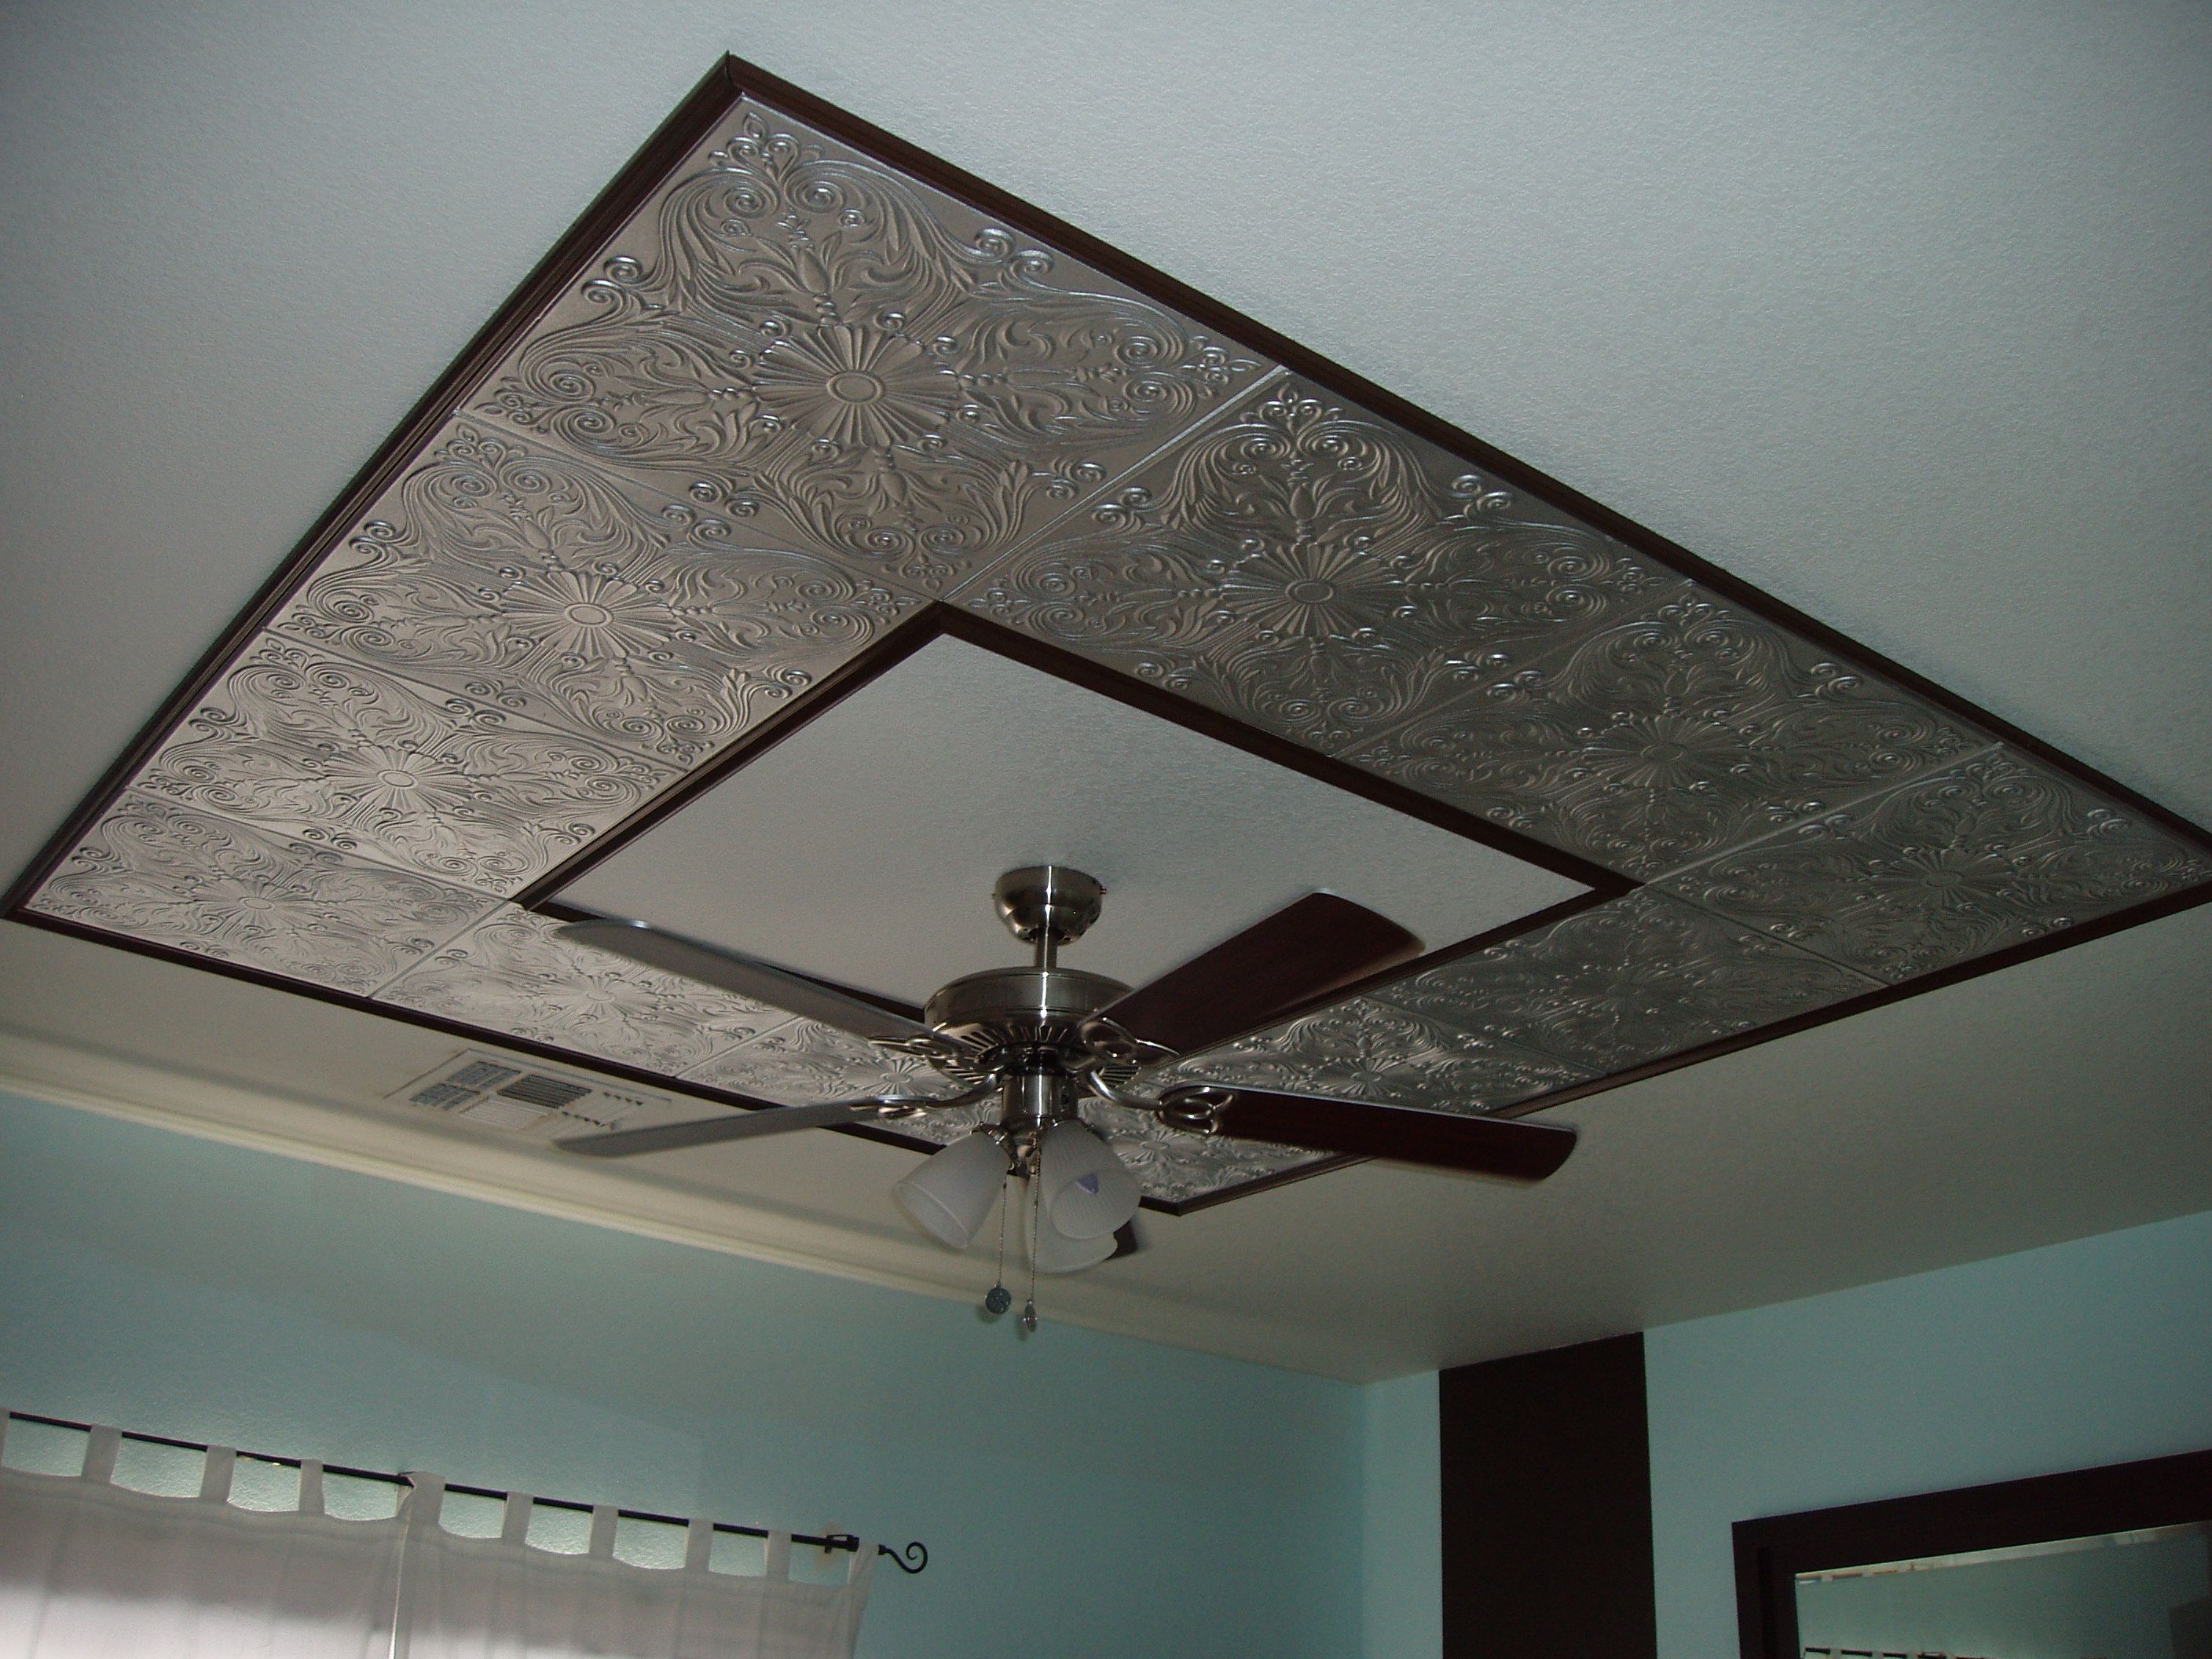 Styrofoam Decorative Ceiling Tile Painted By Customer In Metallic